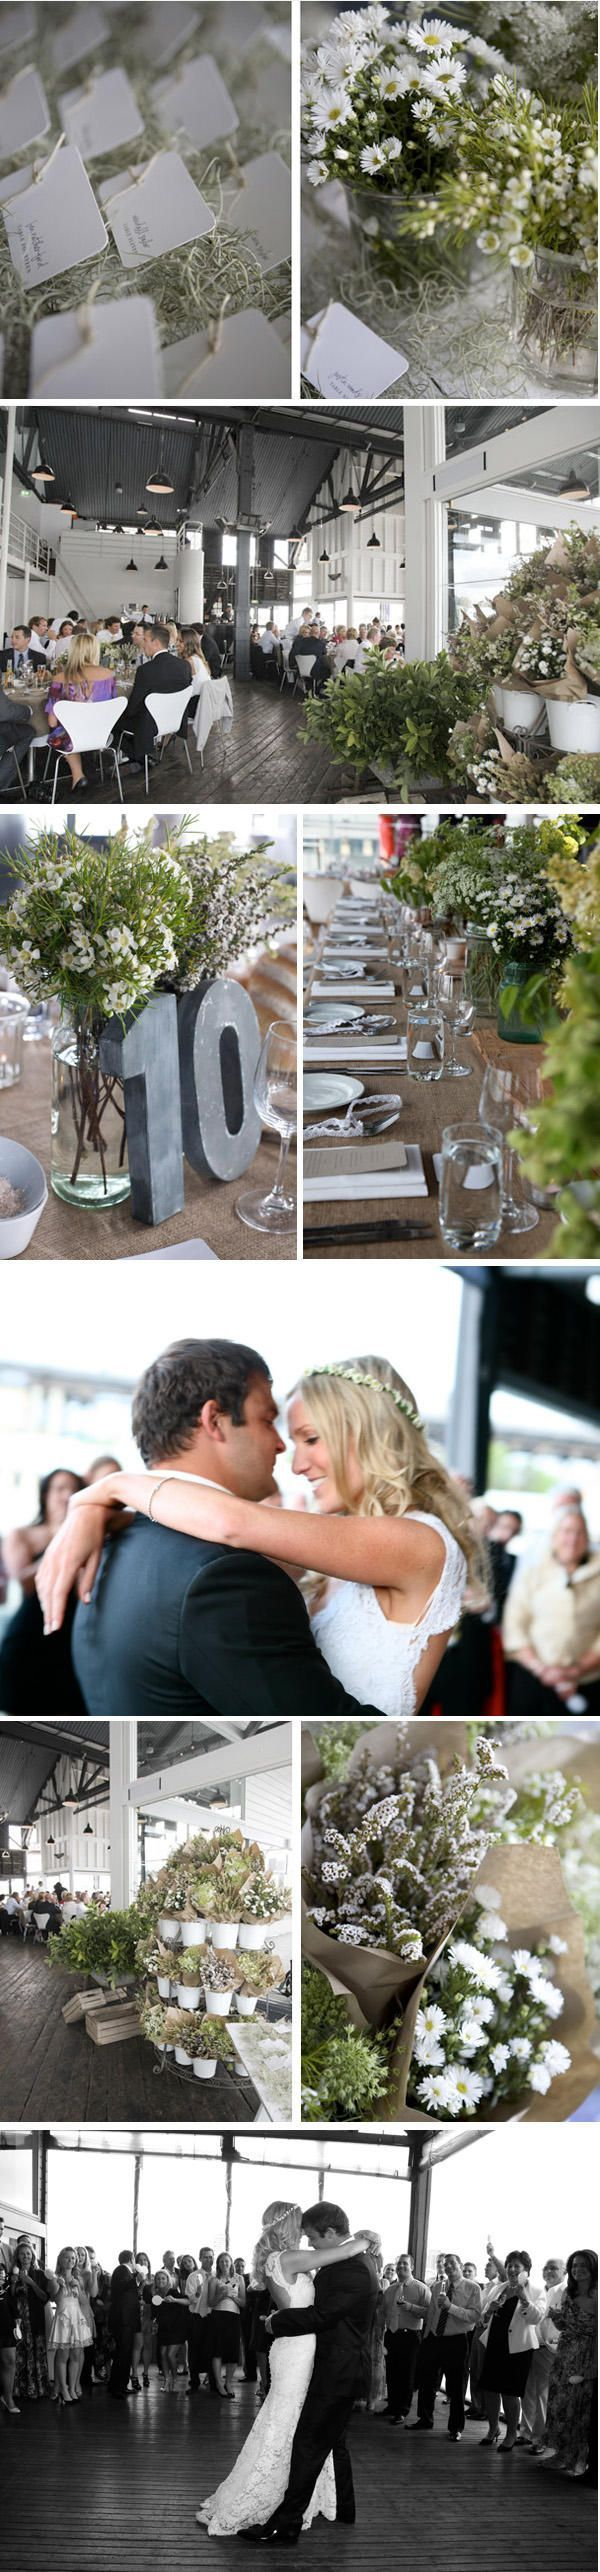 australia wedding ideas